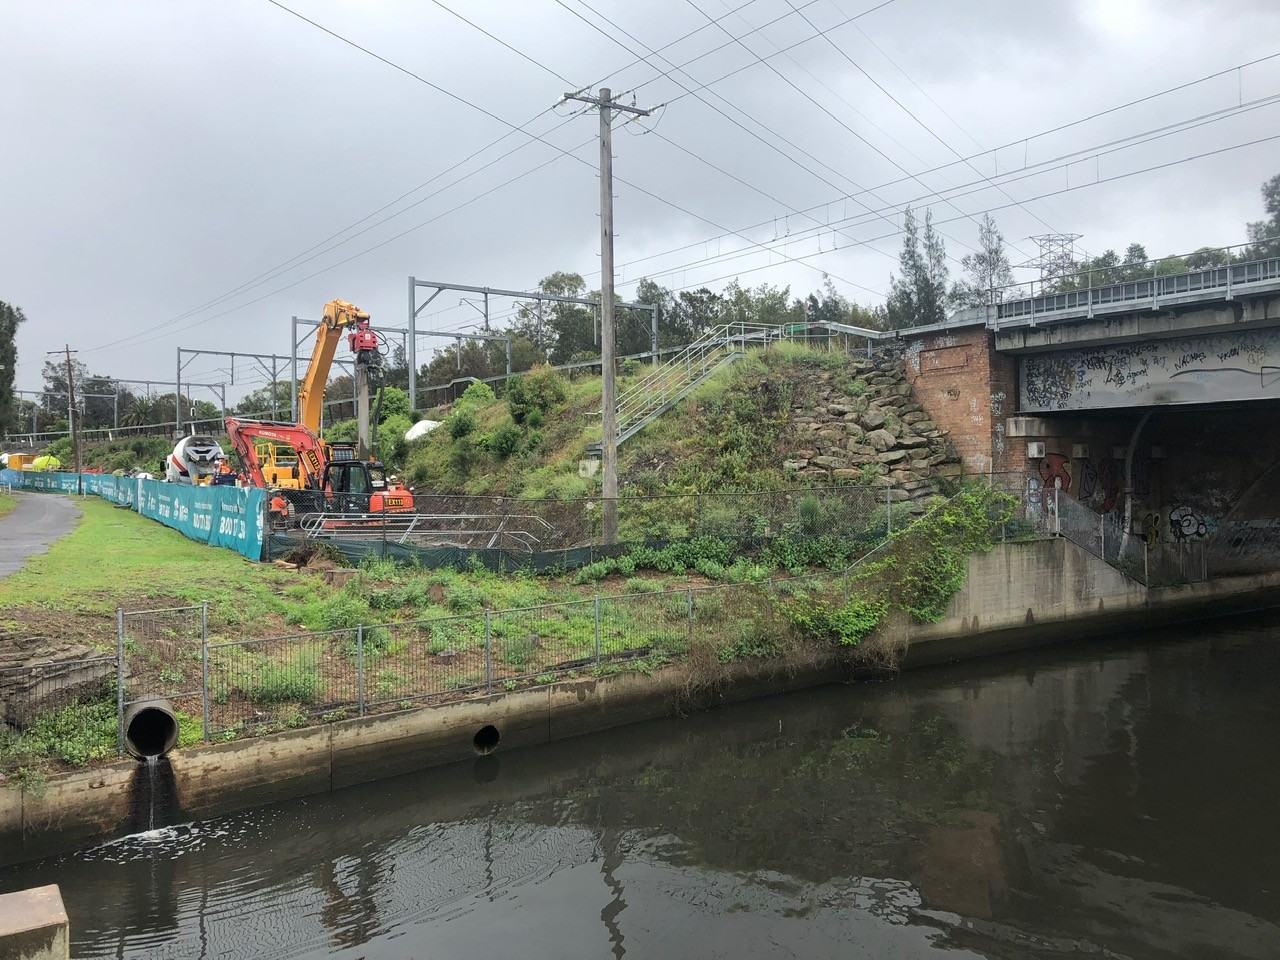 Cooks River NSW 2 - rigid inclusions - bearing capacity - slope stabilisation